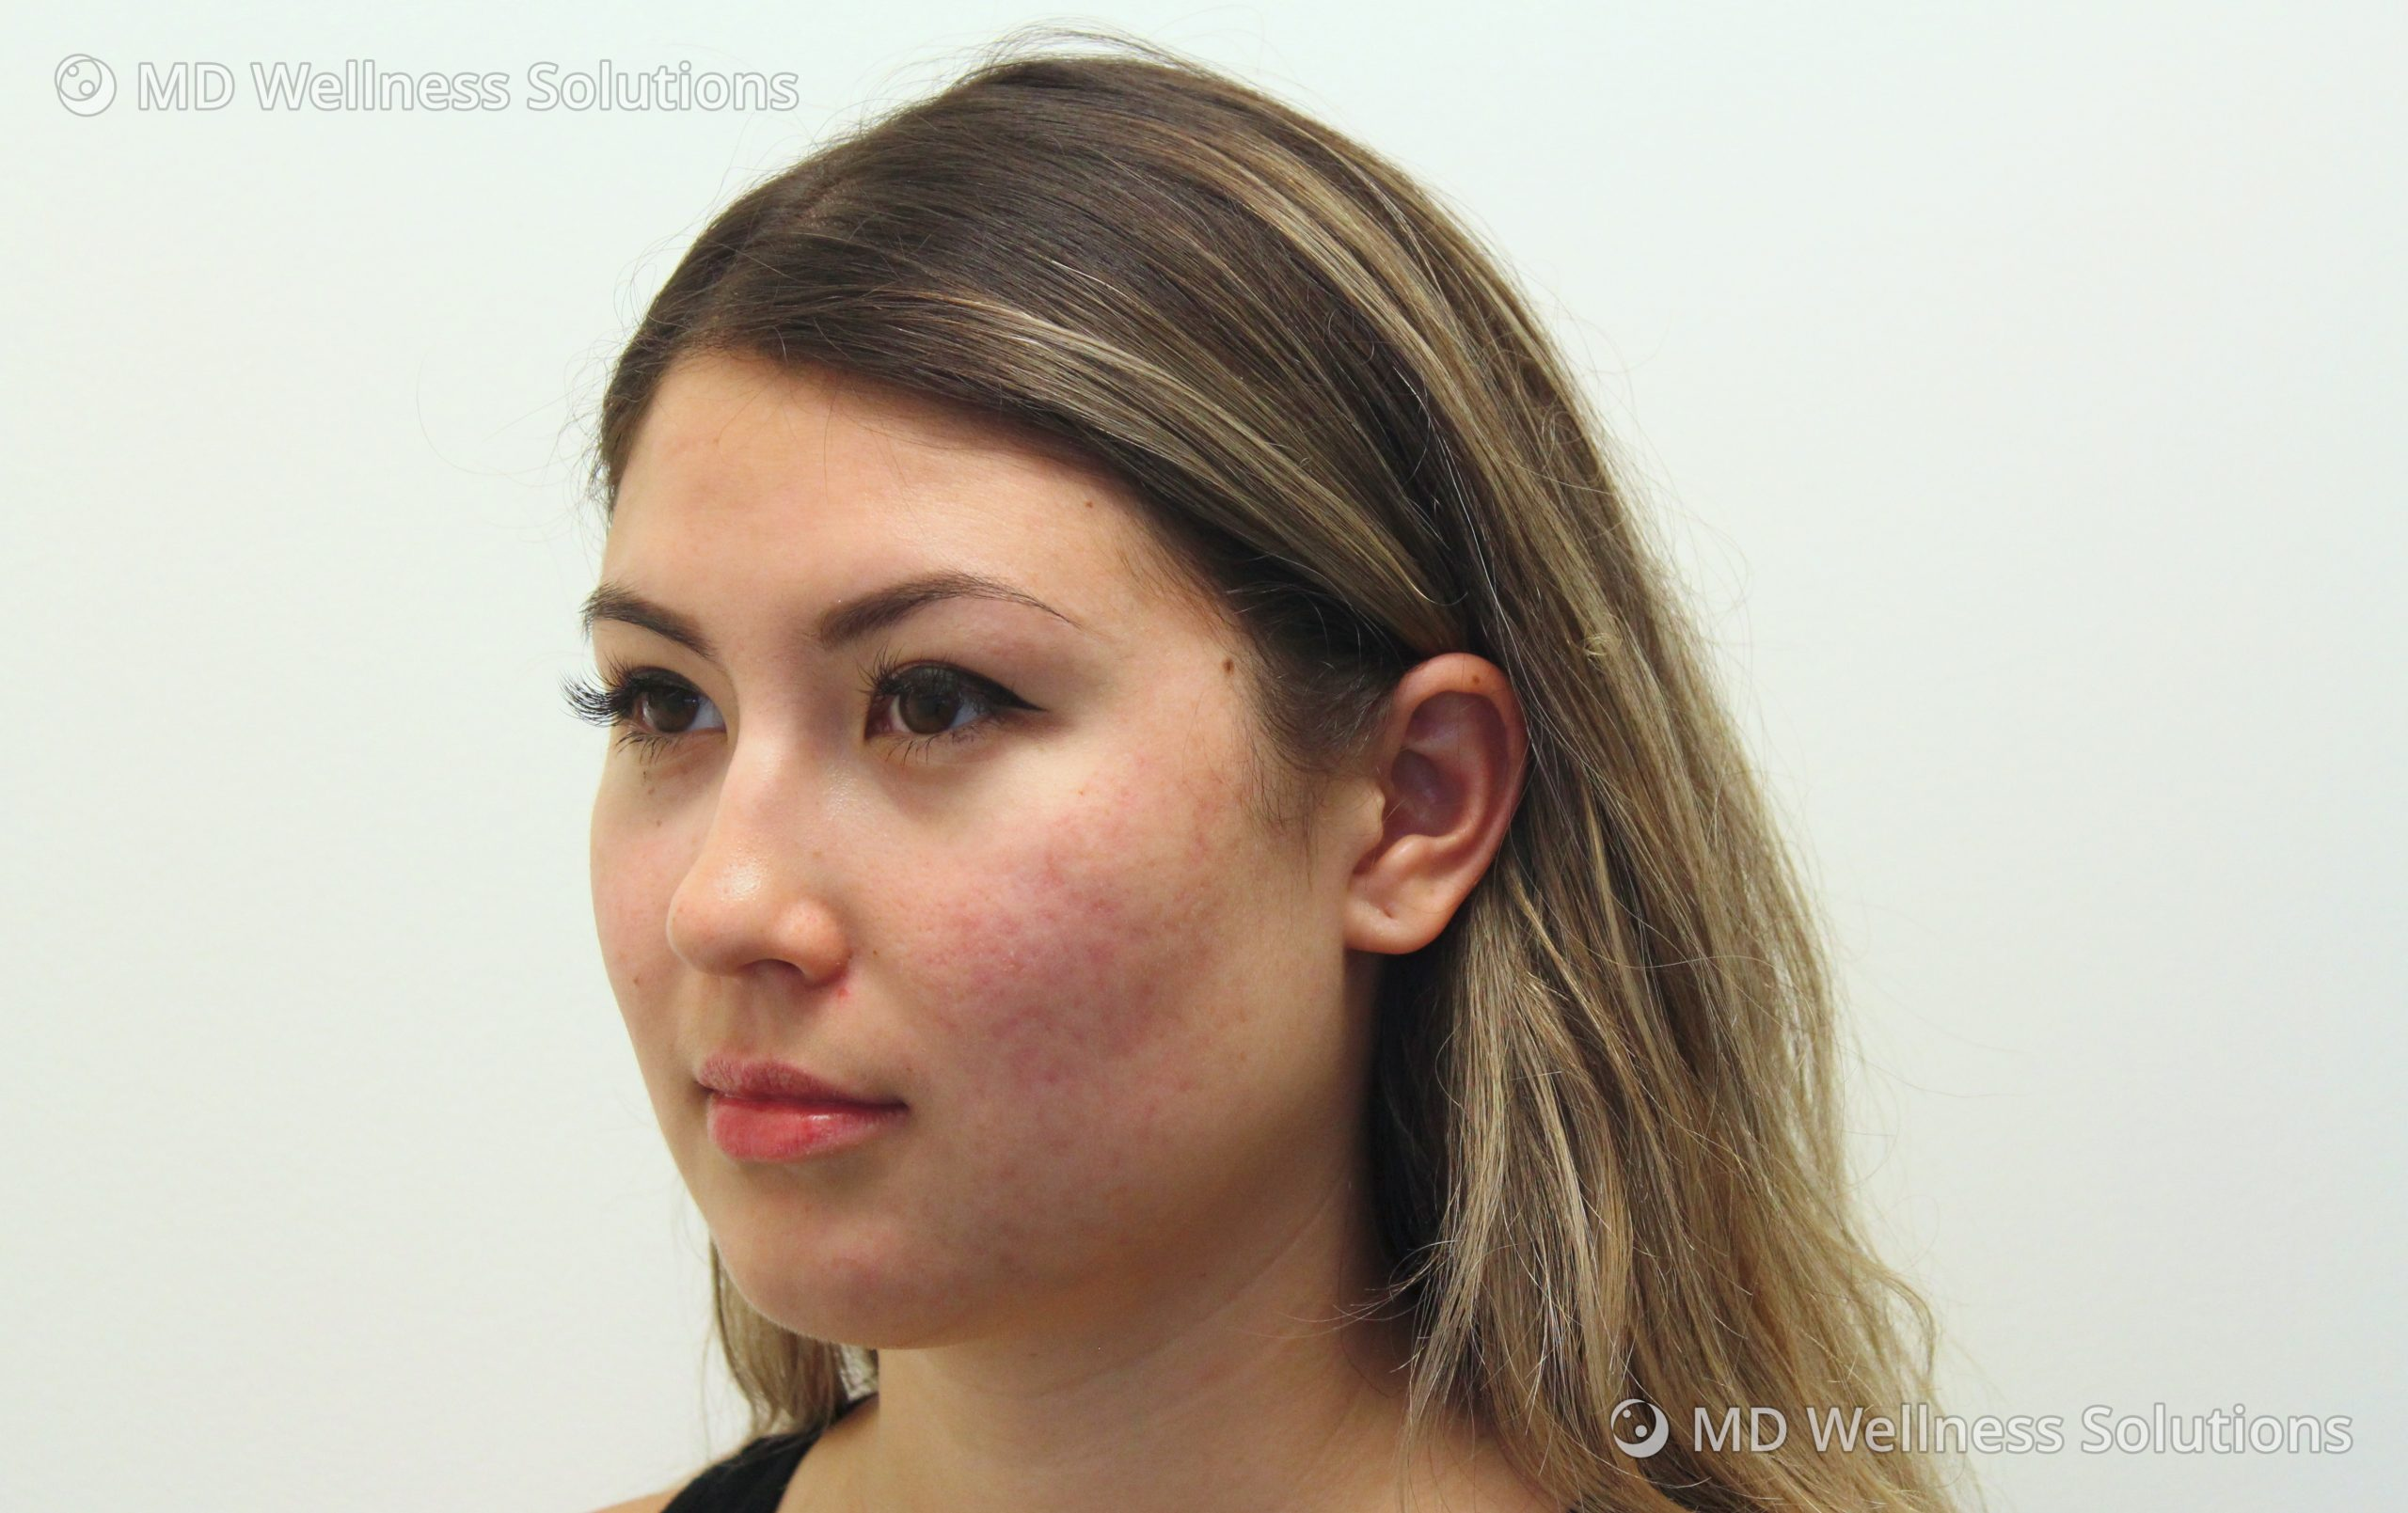 18-24 year old woman after acne treatment